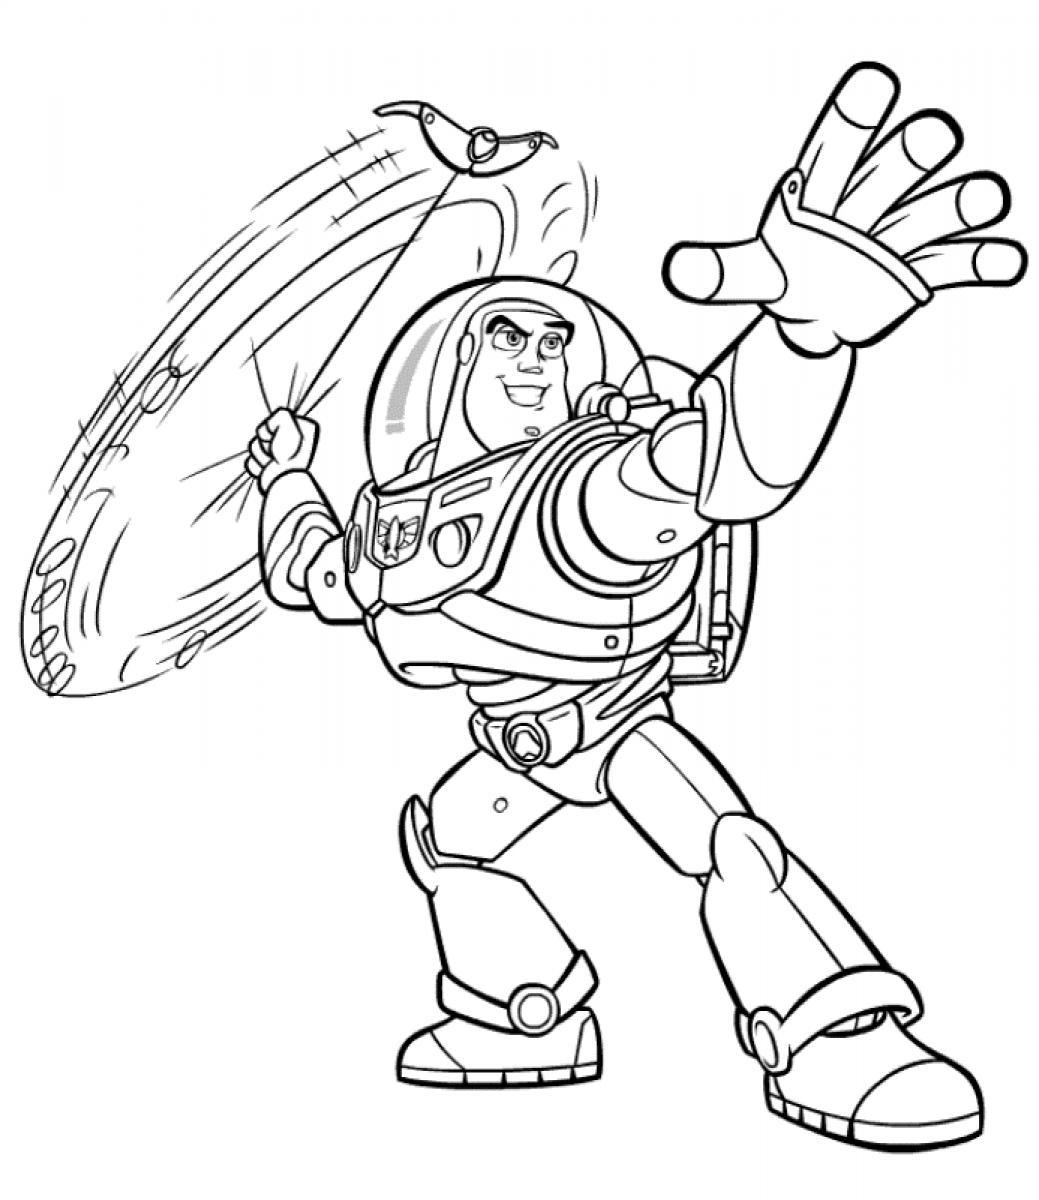 Free Printable Buzz Lightyear Coloring